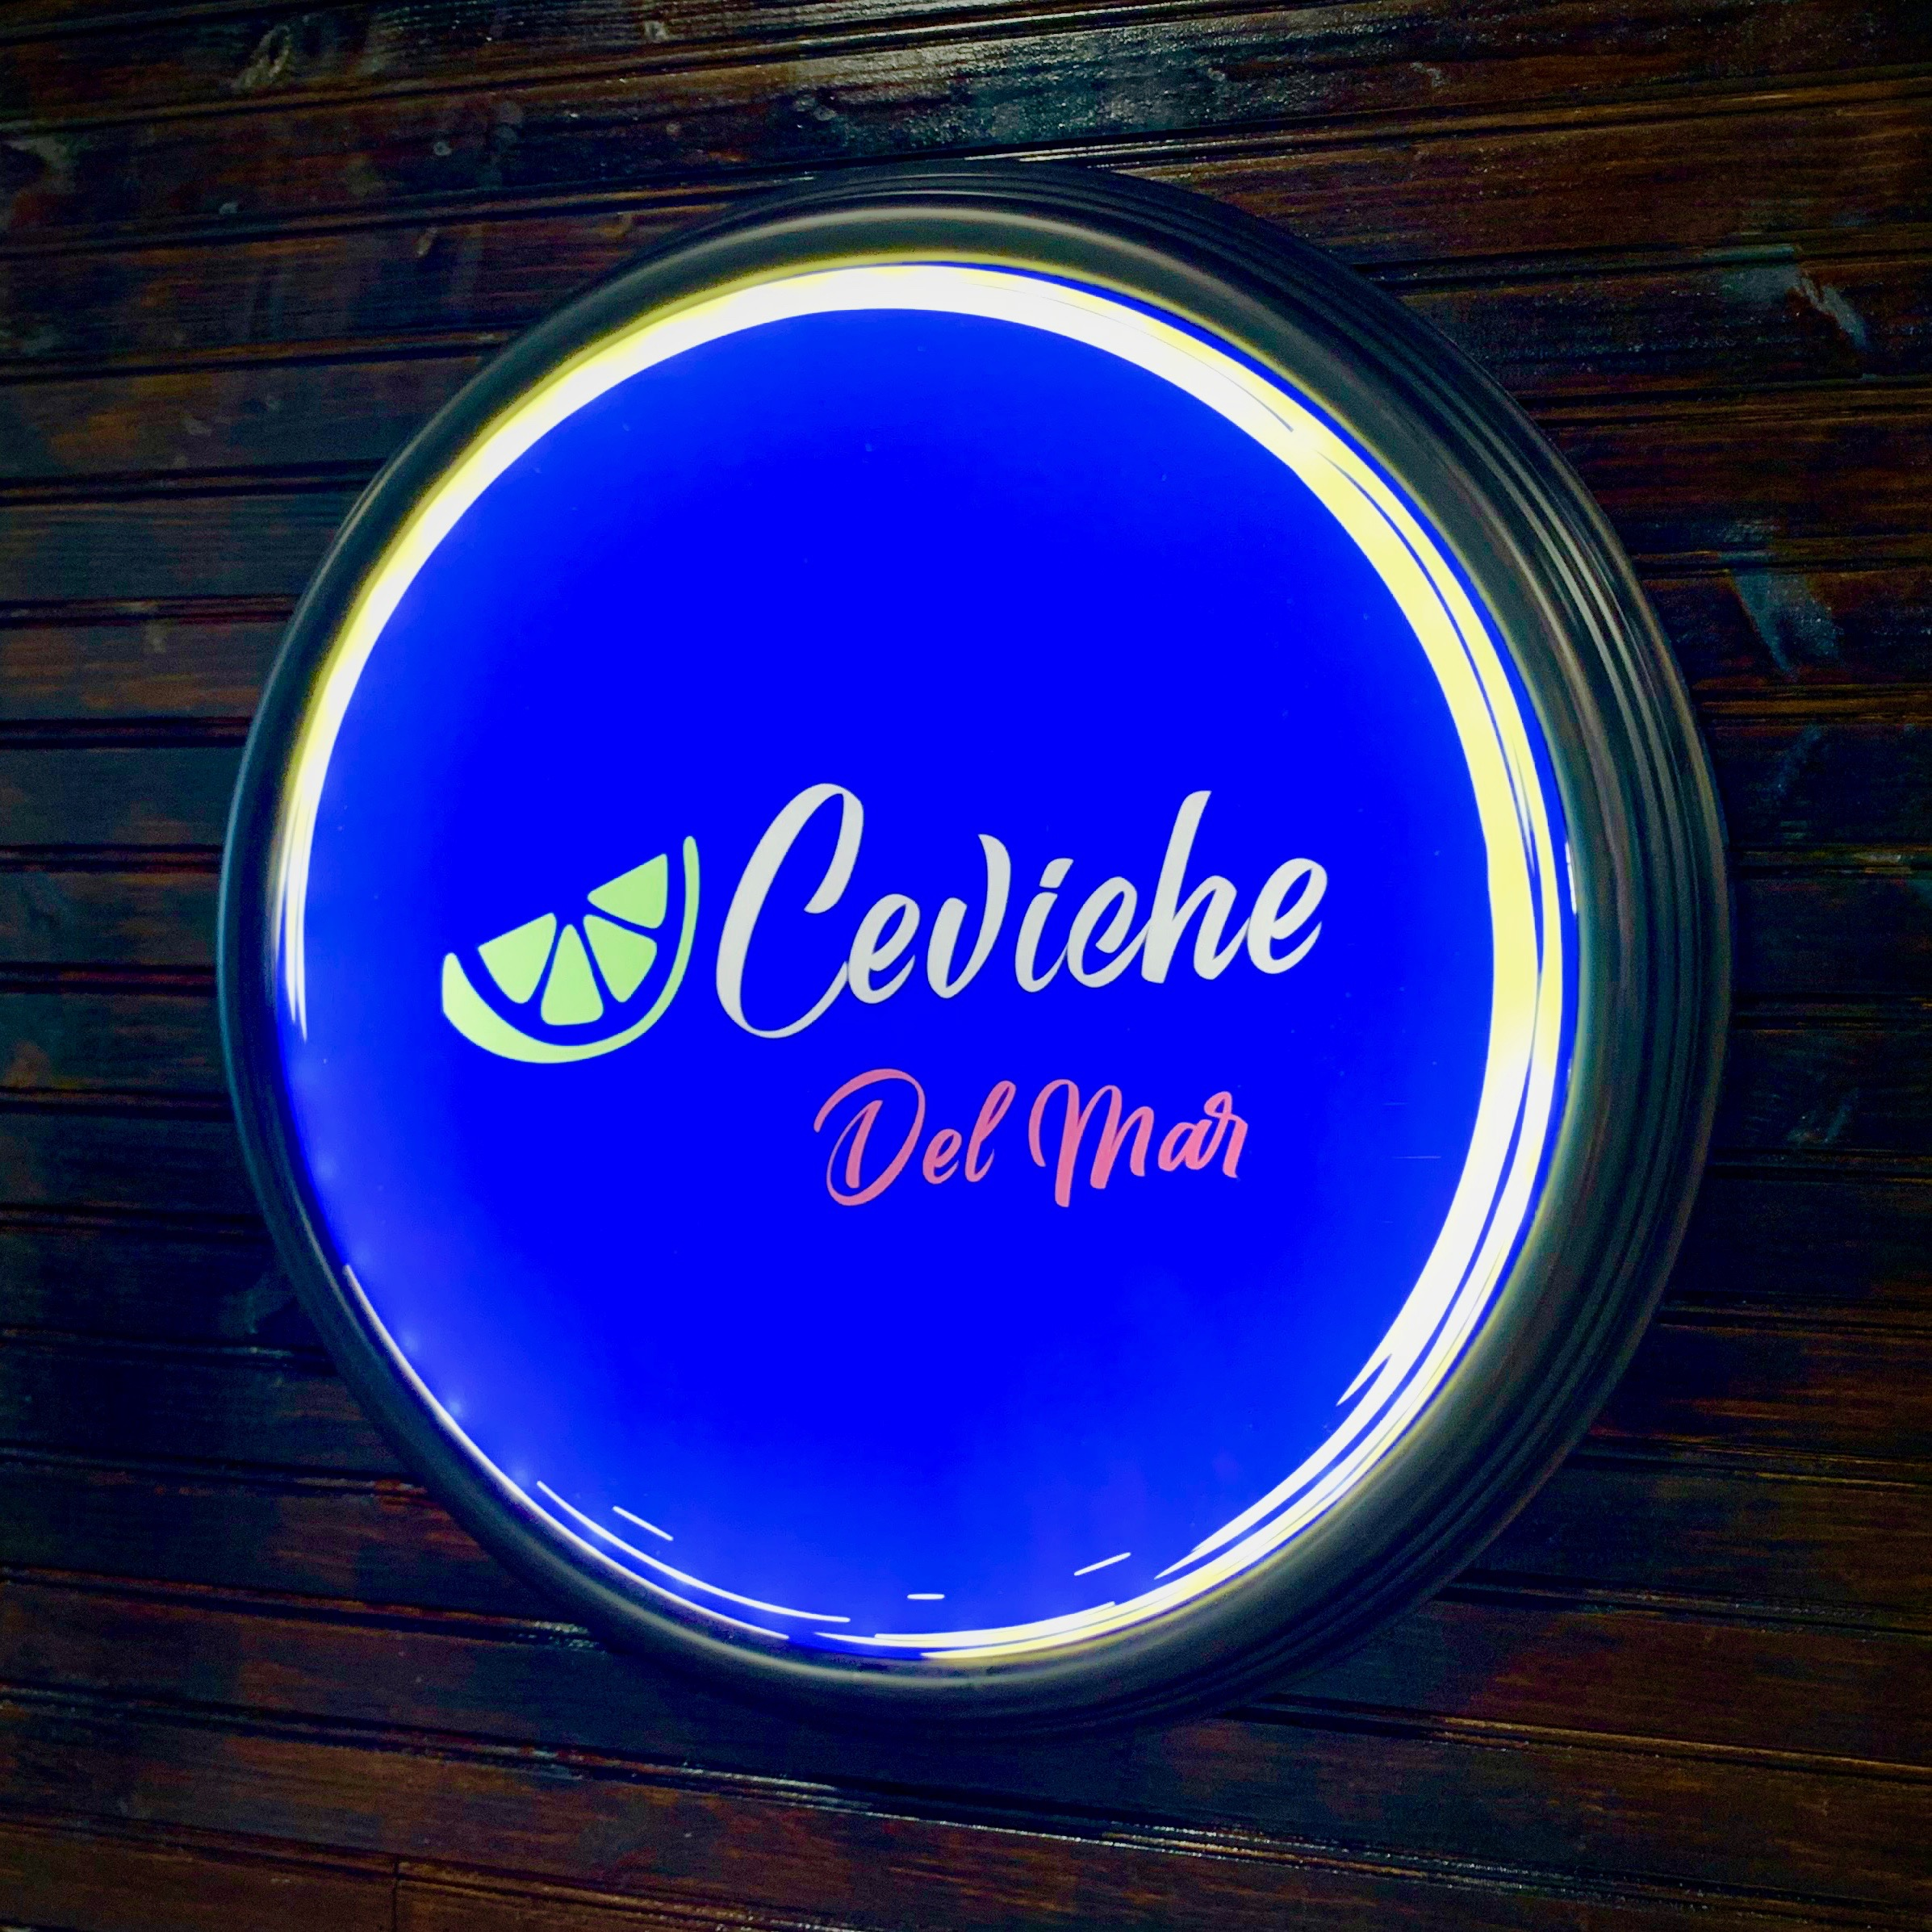 Ceviche Del Mar Now Open!